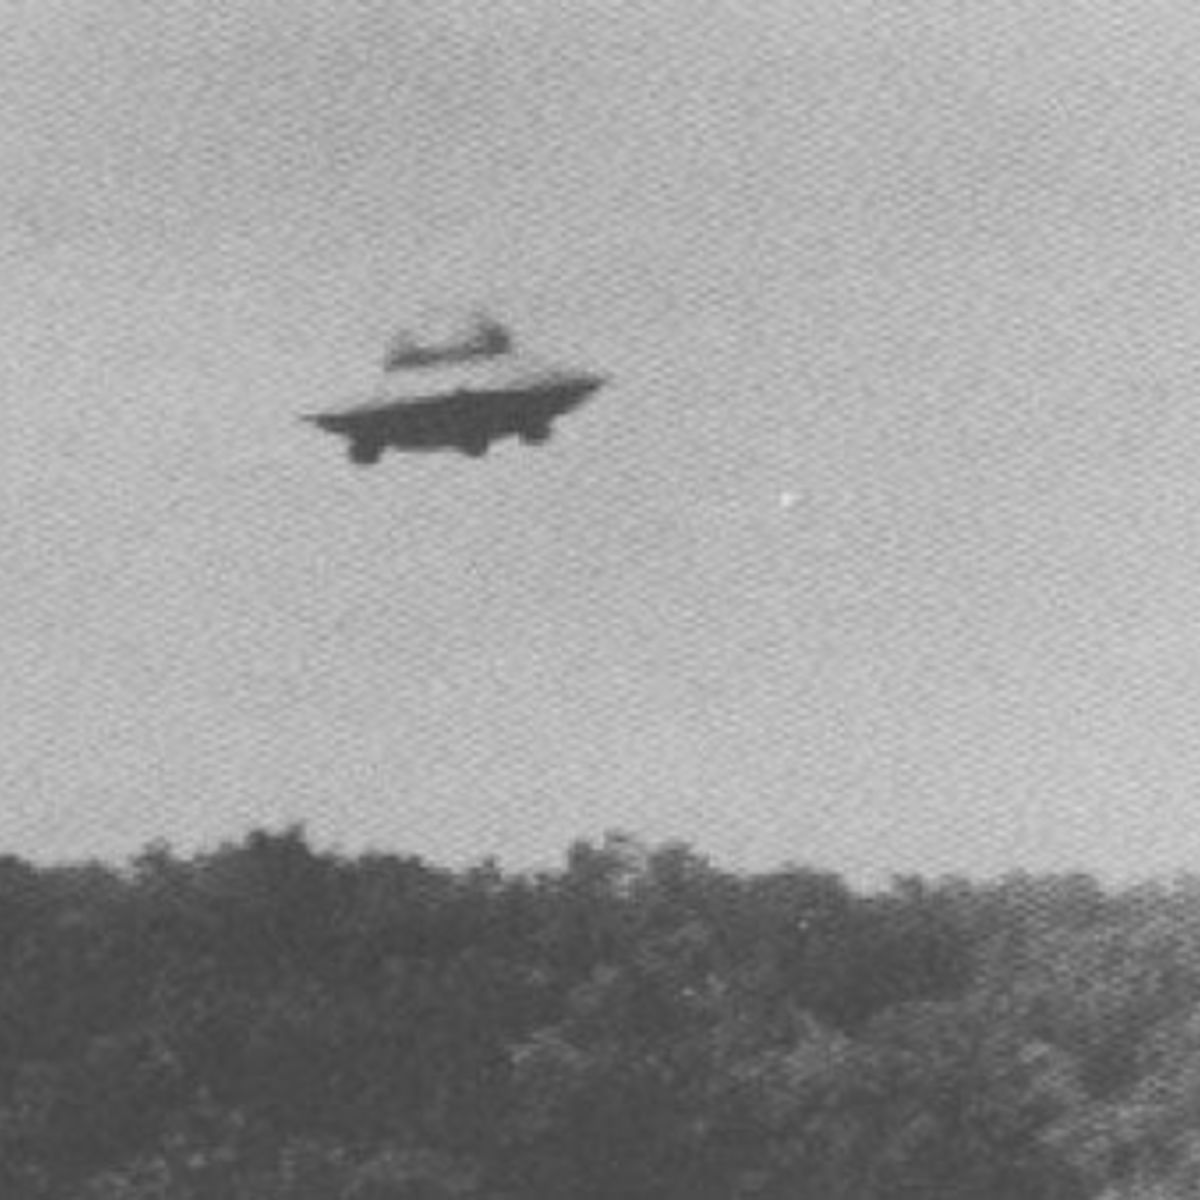 UFO: a selection of sites